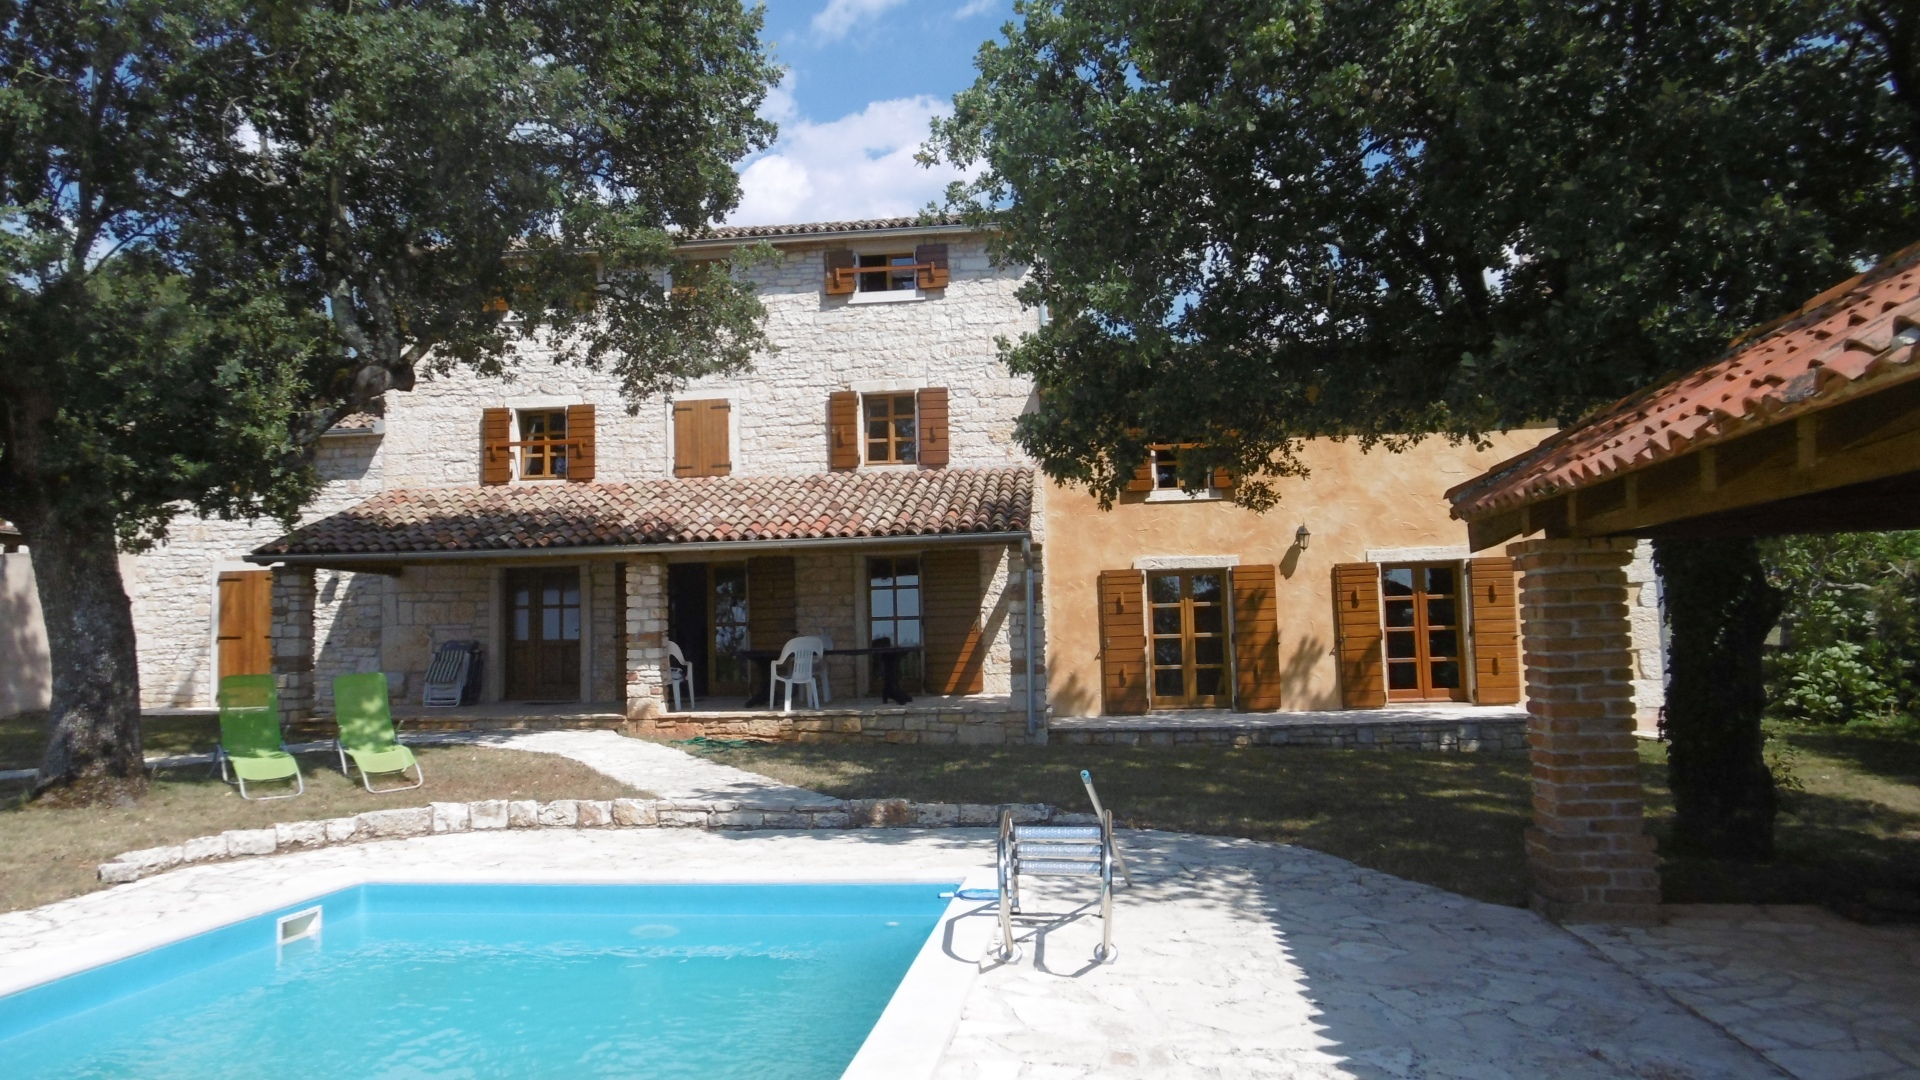 P-896 Detached, renovated stone house in a quiet location with a large garden and pool and sea views.